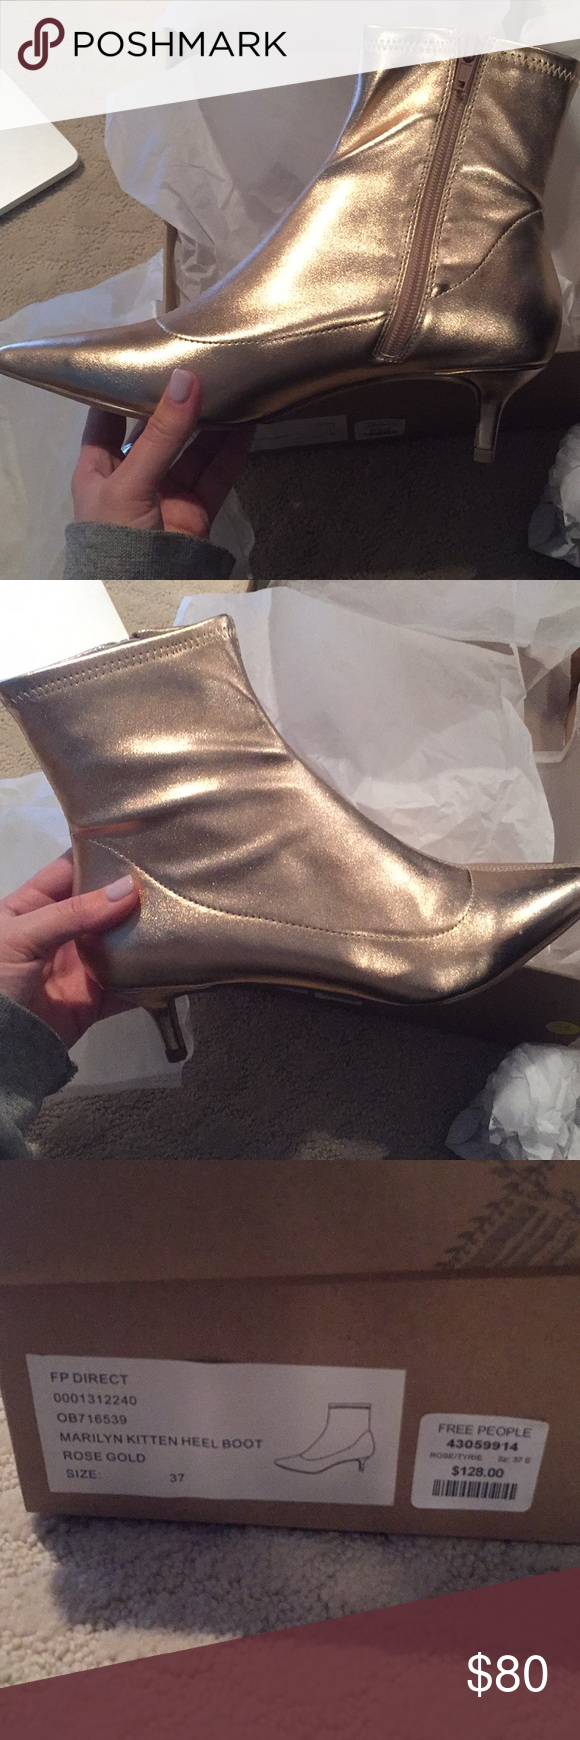 2d3baa78ea4 Free people Marilyn Kitten Heel Brand new still in the box with all the  original wrappings. Beautiful rose gold color. Size 7. If you would like to  see more ...